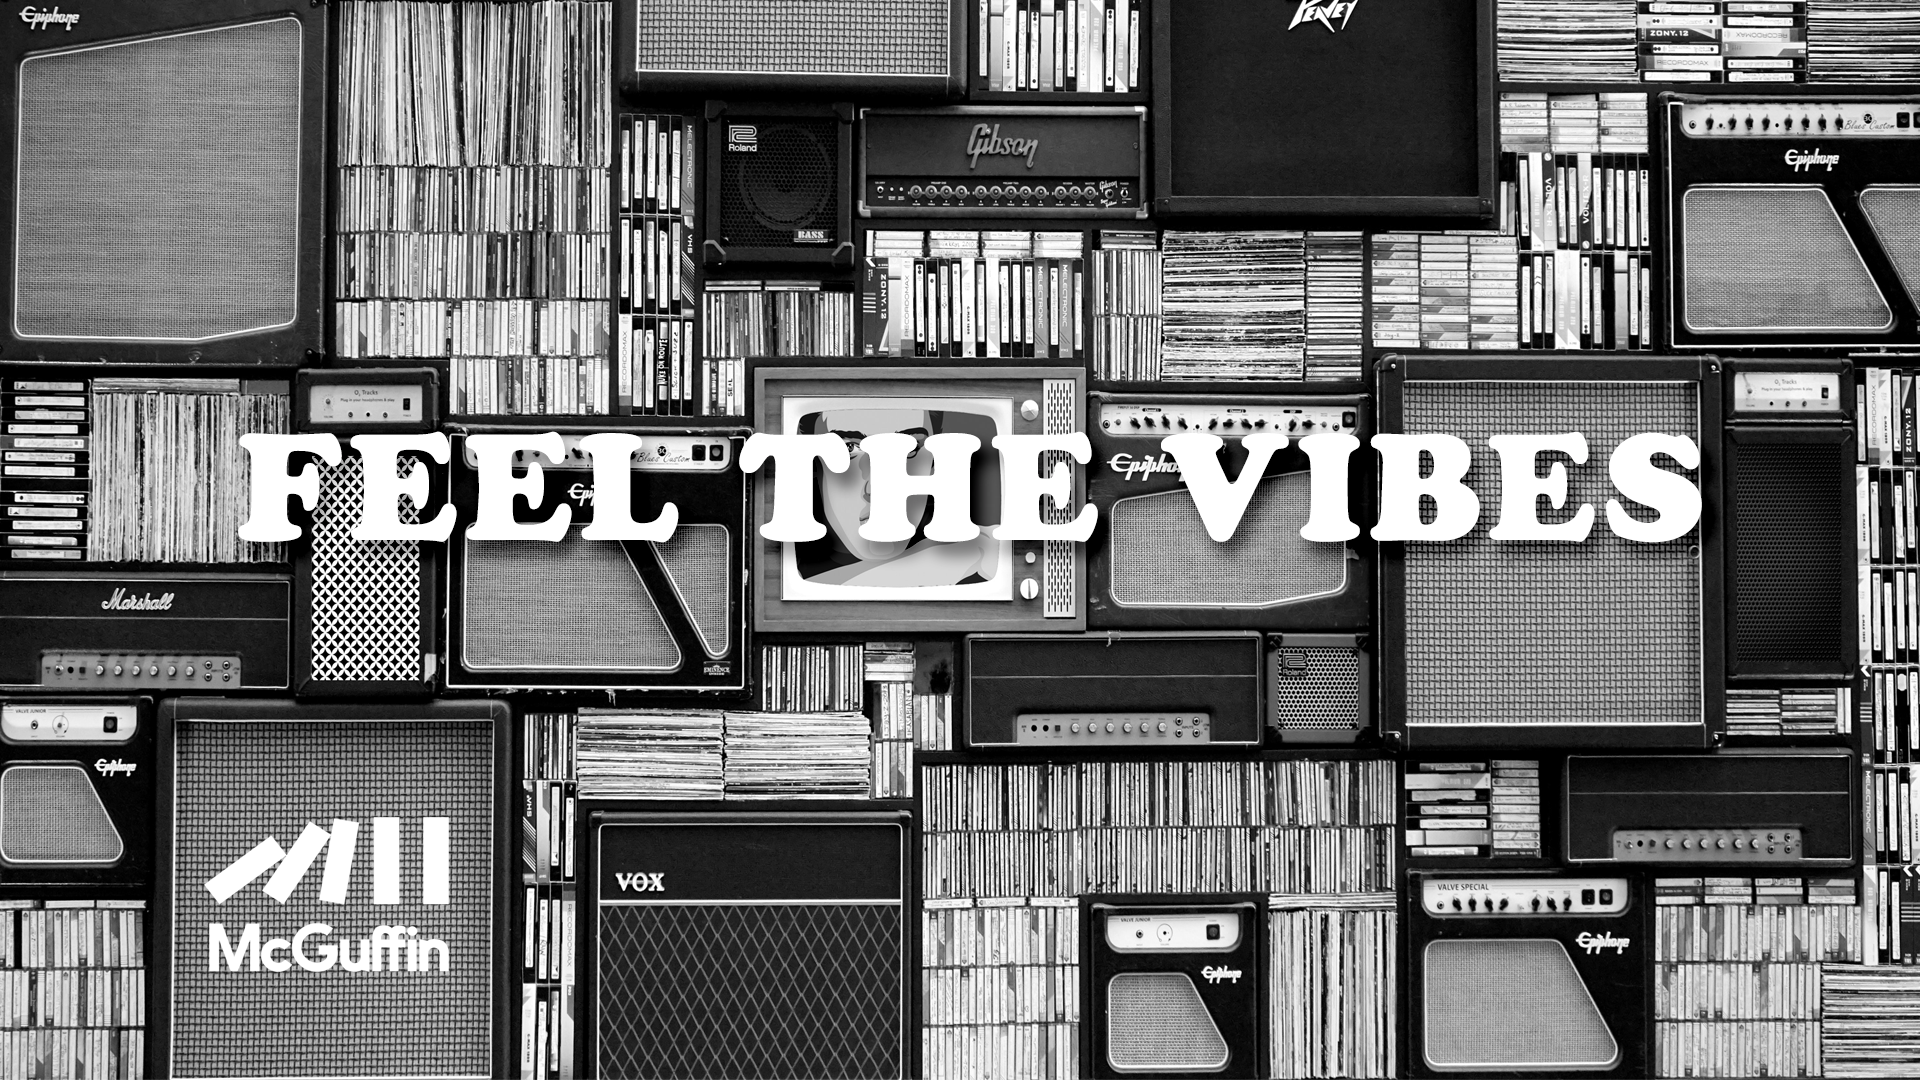 McGuffin FEEL THE VIBES January 2019